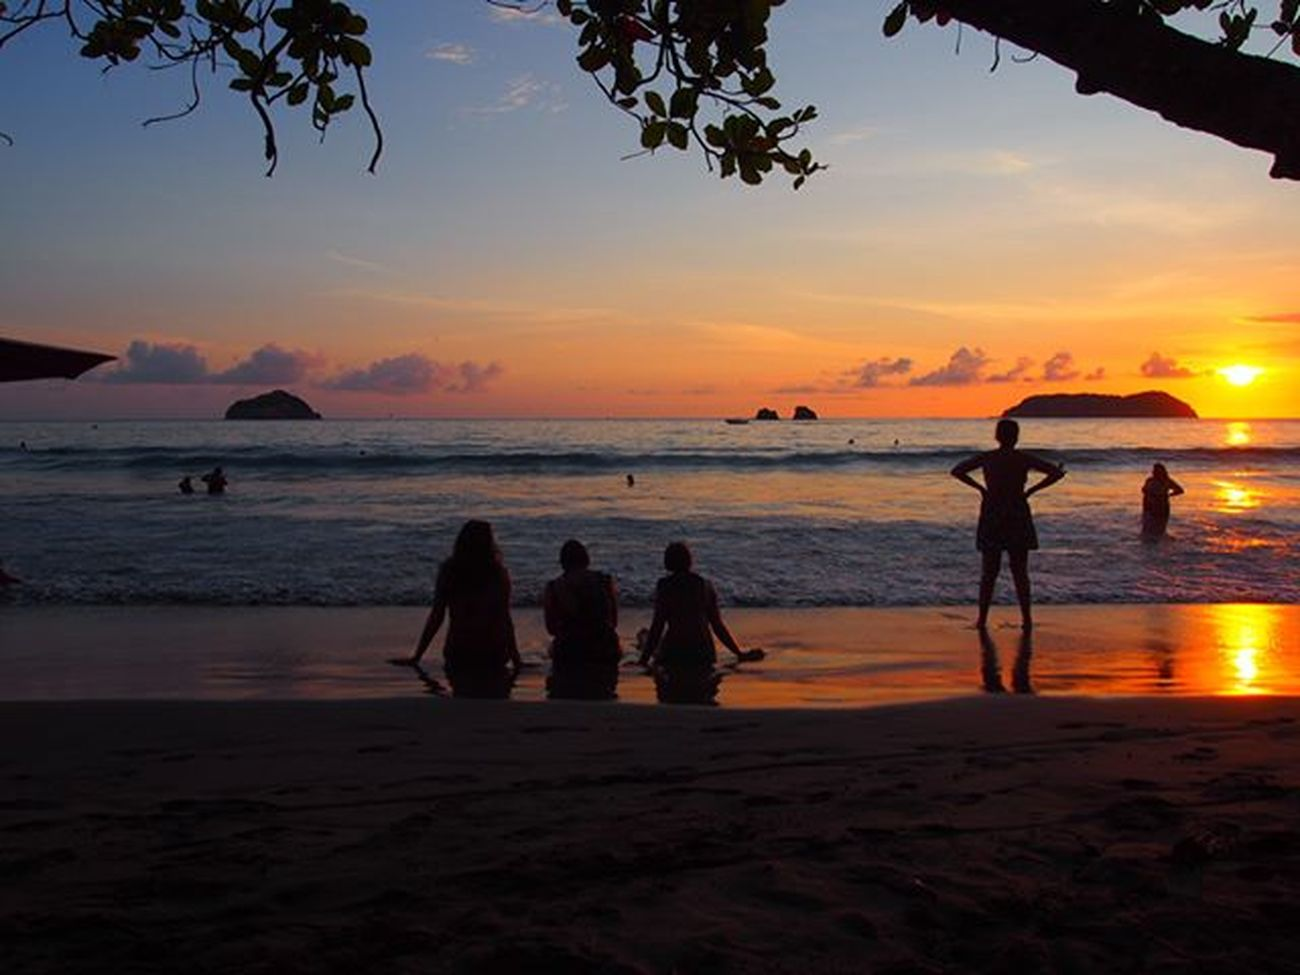 Manuel Antonio Beach at sunset with friends ------------------------------------------- Manuelantonio Exploremanuelantonio Costarica Explorecostarica Beach Beaches Blacksandbeach Beachlife Sunset Sunsets Sunsetlovers Surise_sunsets_aroundworld Travel Travels Travelling Instatravel Olympus Gadventures Gadventurestour